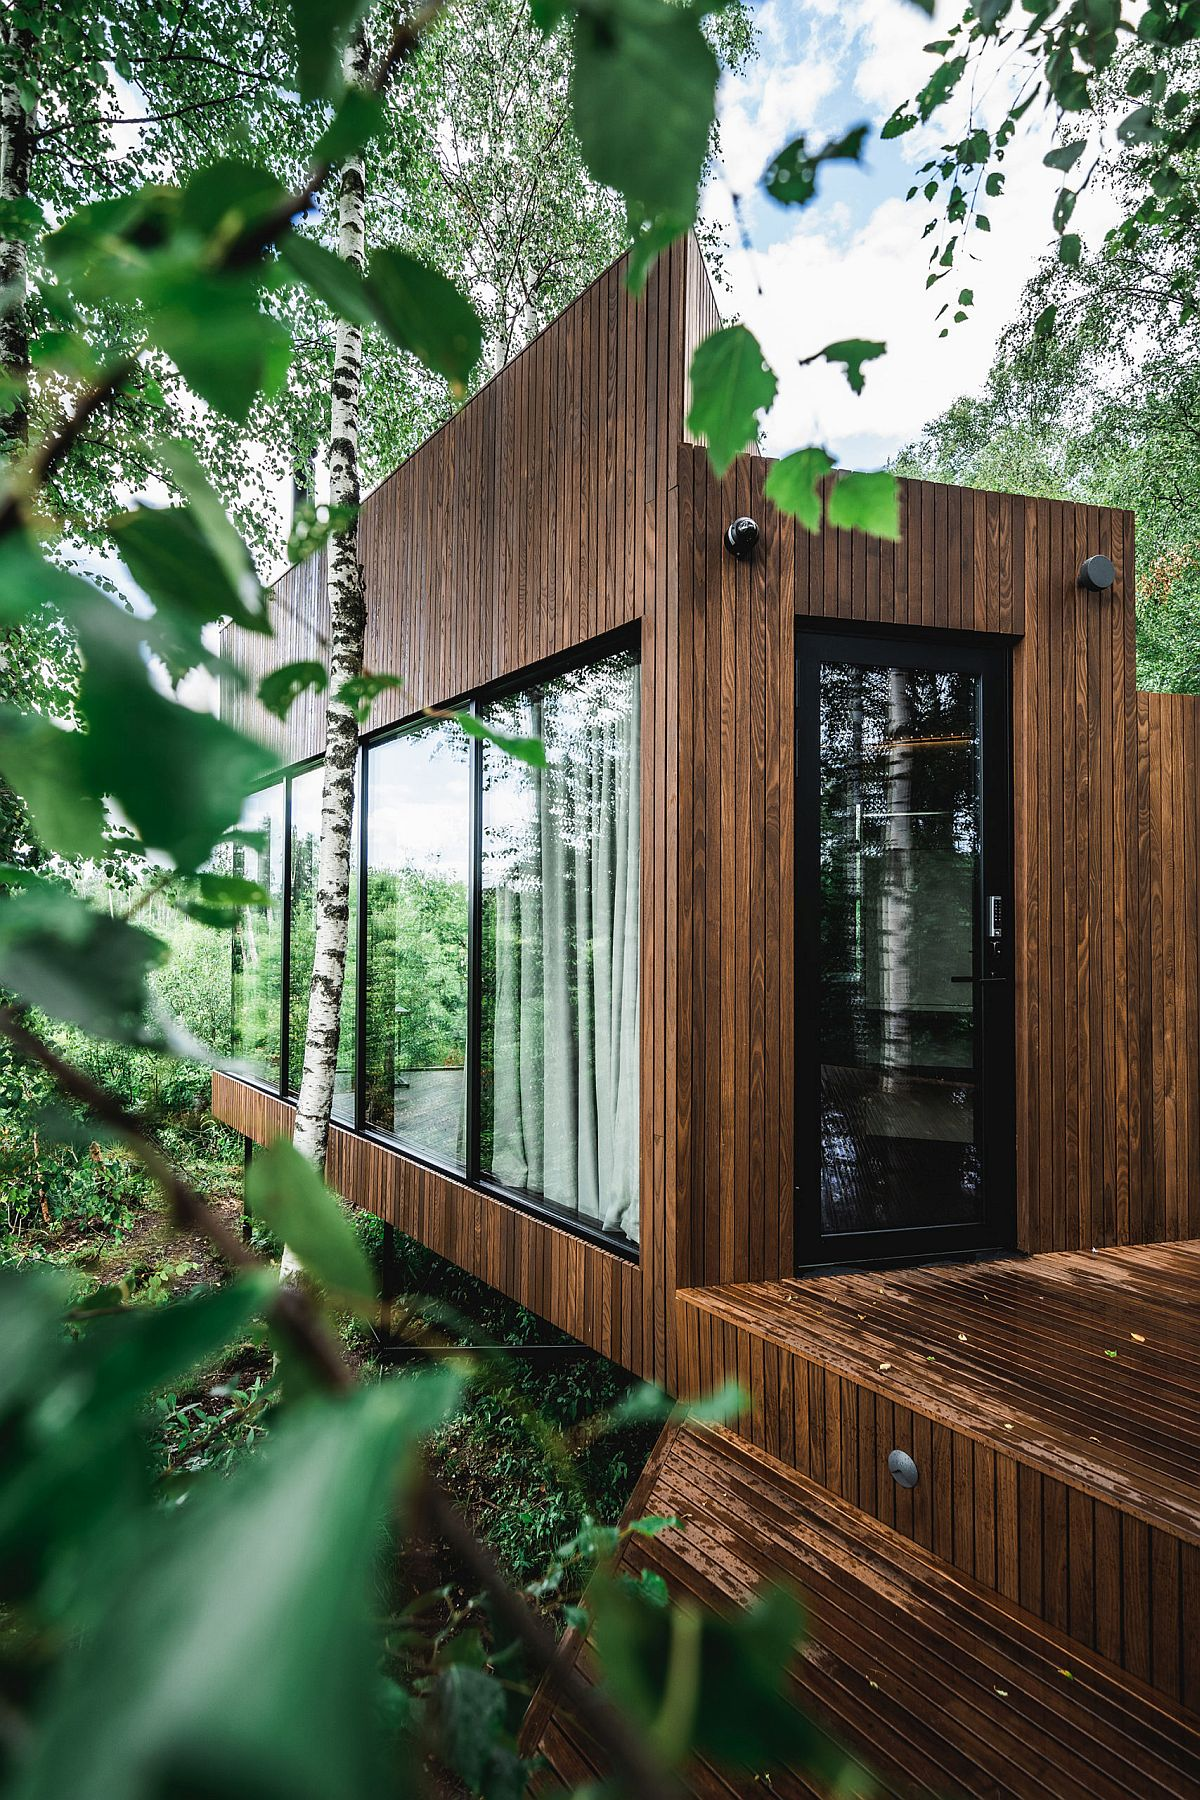 Cozy-and-eco-friendly-wooden-cabin-in-the-woods-with-smart-glass-doors-and-drapes-70105